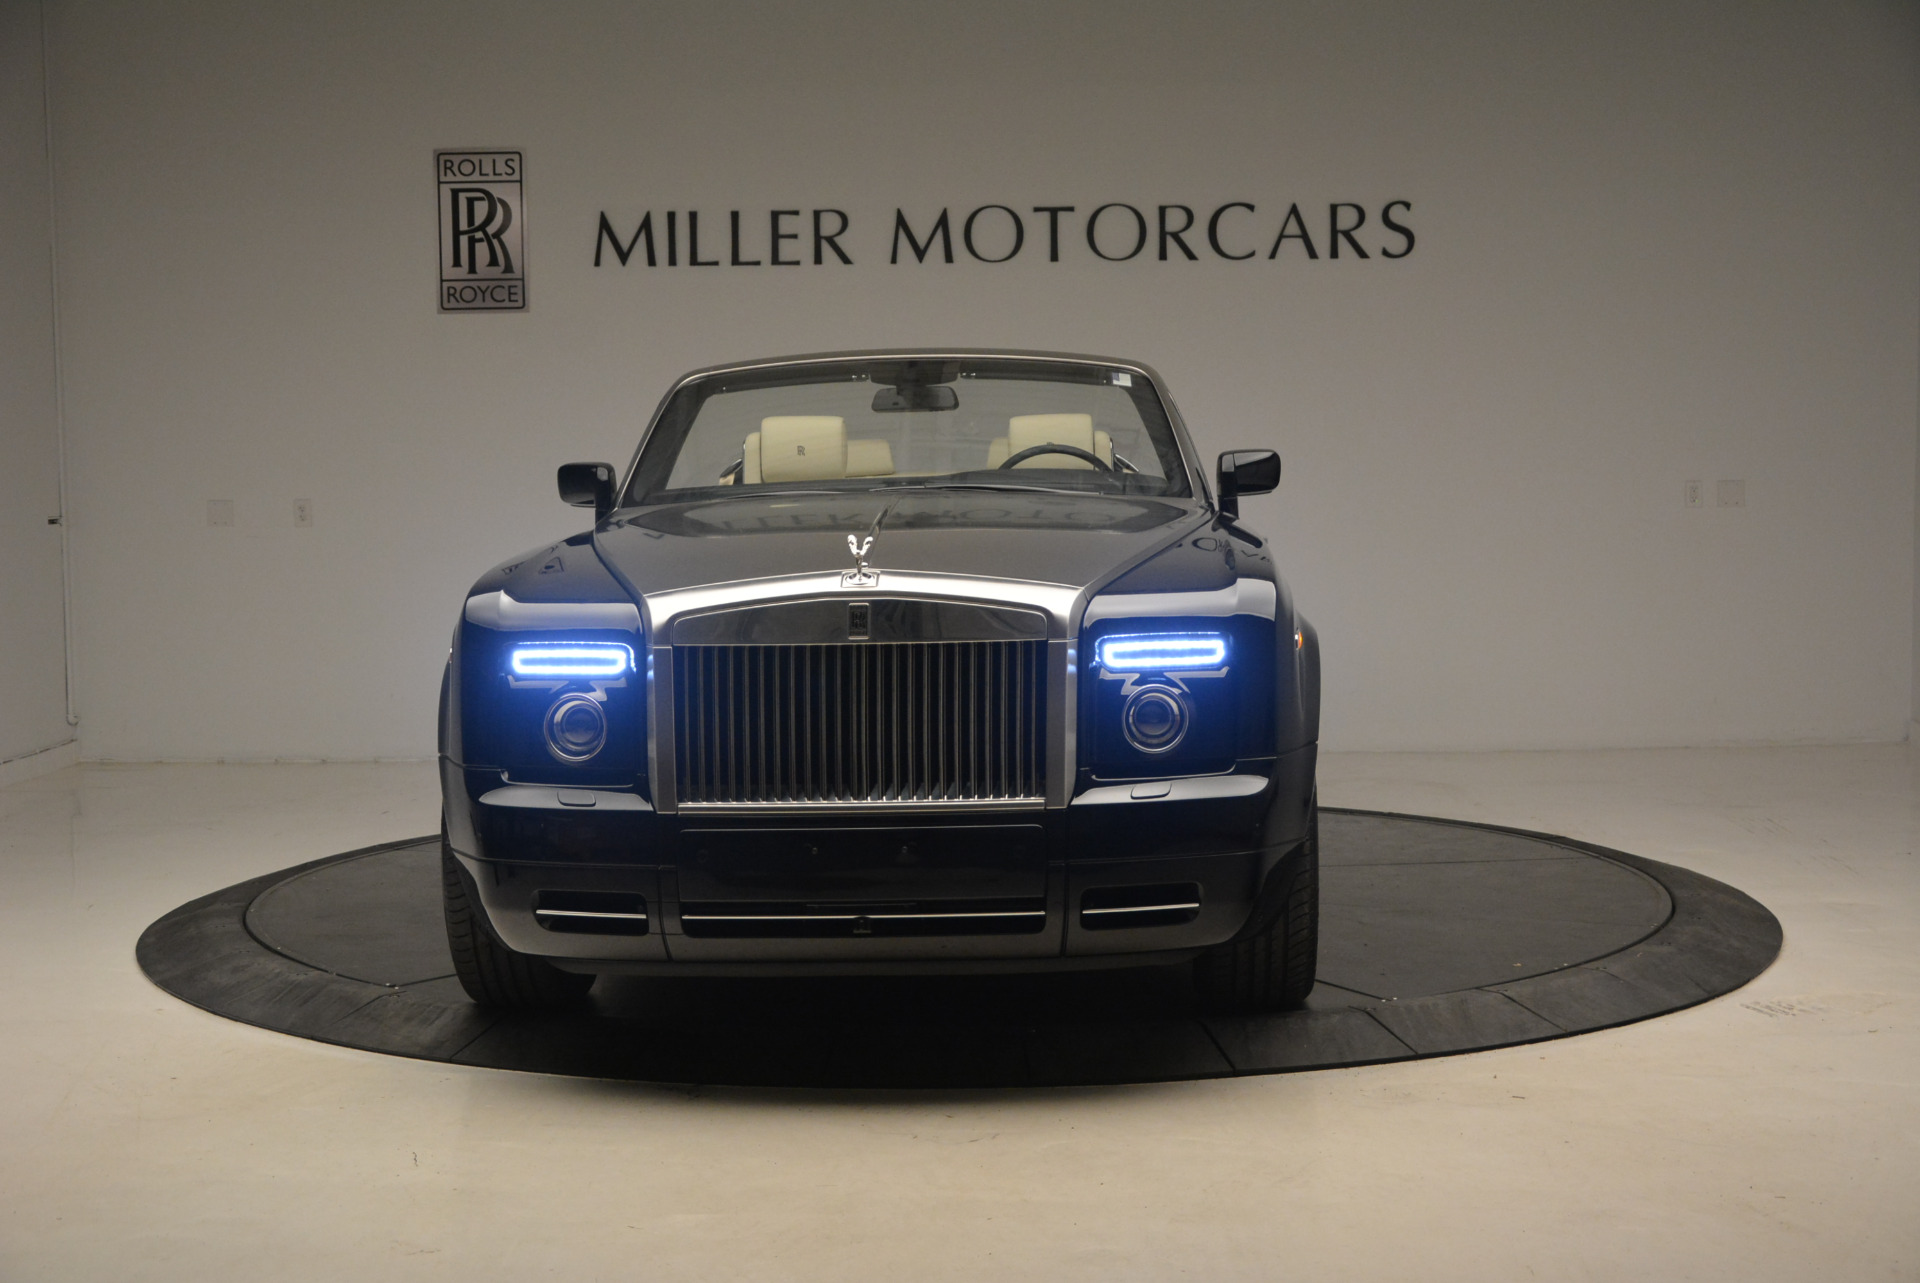 Used 2009 Rolls-Royce Phantom Drophead Coupe  For Sale In Greenwich, CT 1792_p13